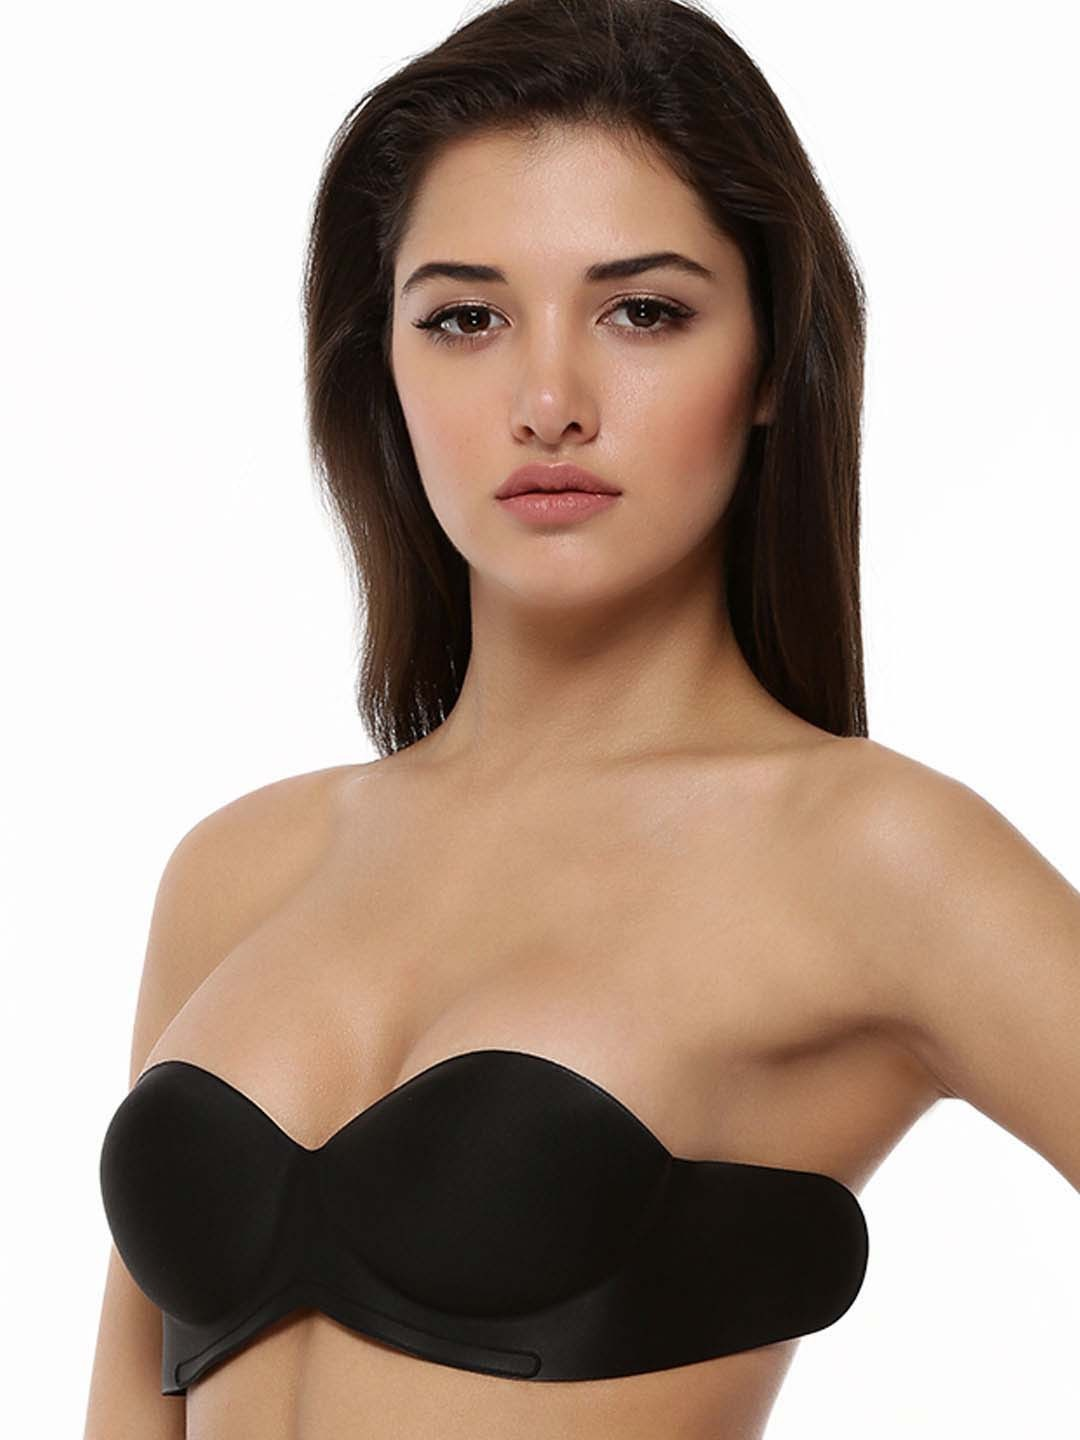 Buy Magic Backless Adhesive Strapless Bra For Women - Women's ...